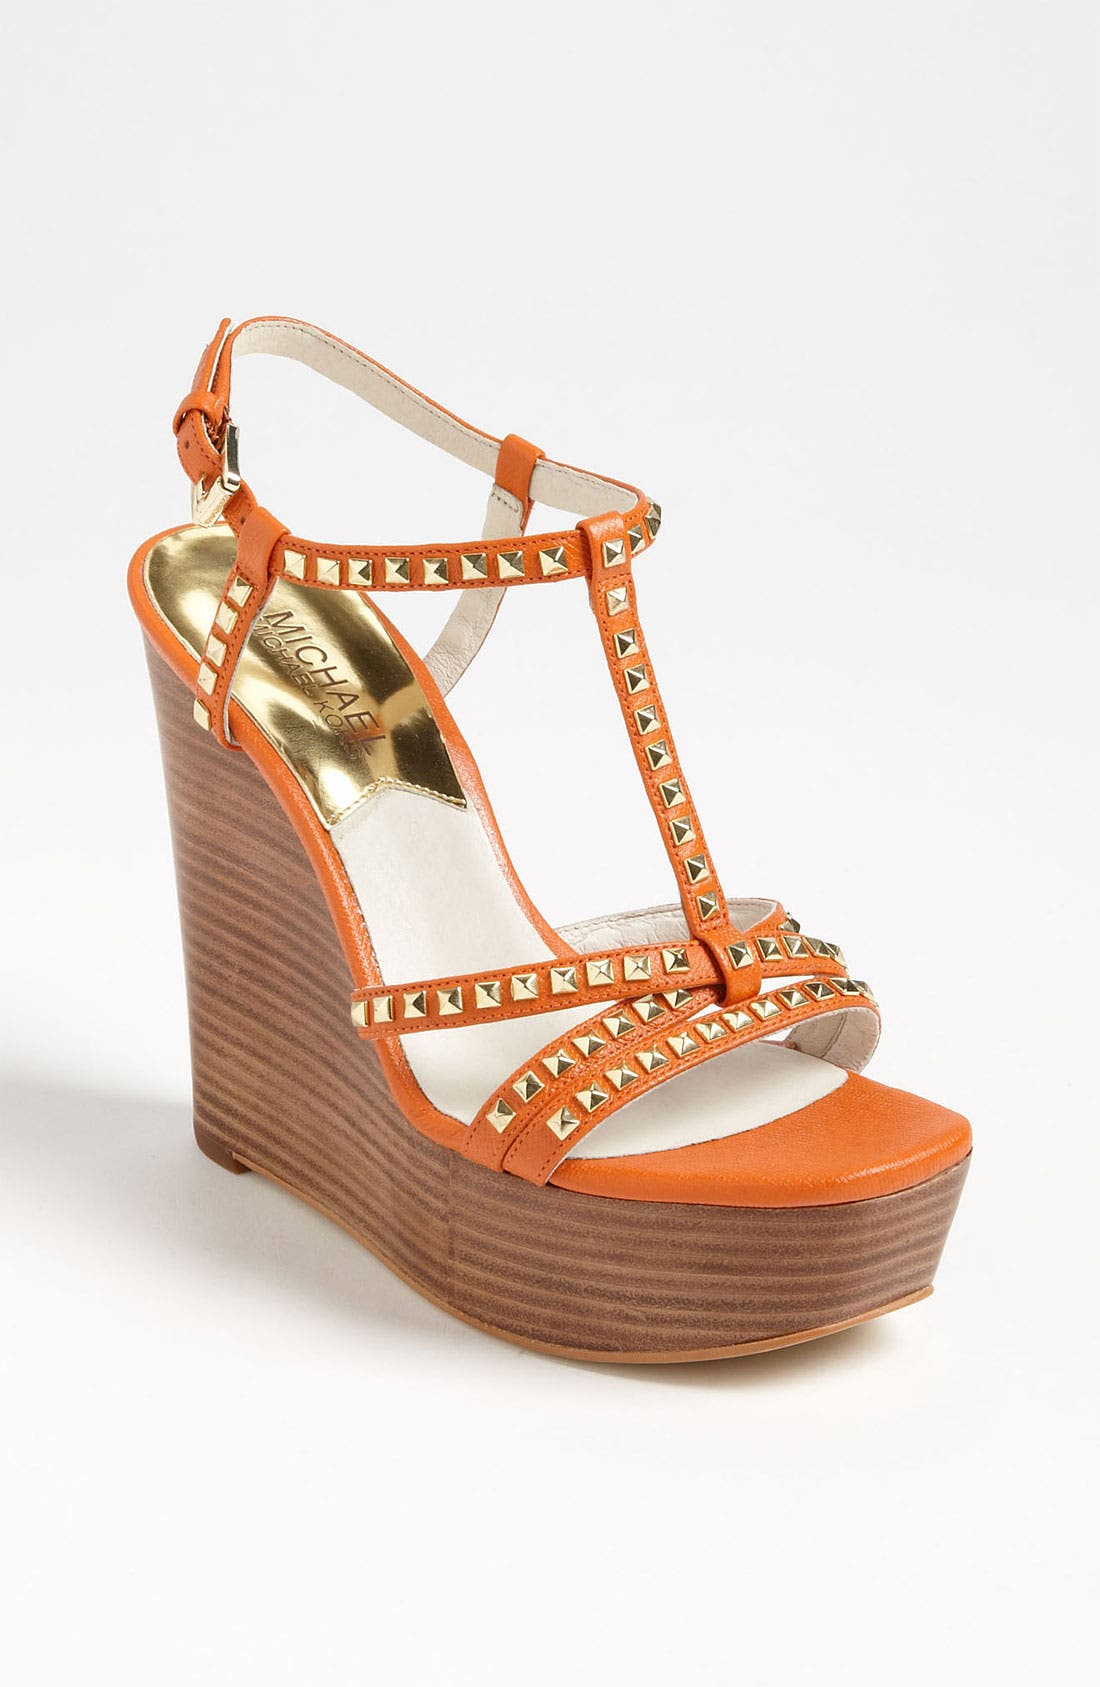 Alternate Image 1 Selected - MICHAEL Michael Kors 'Alexi' Wedge